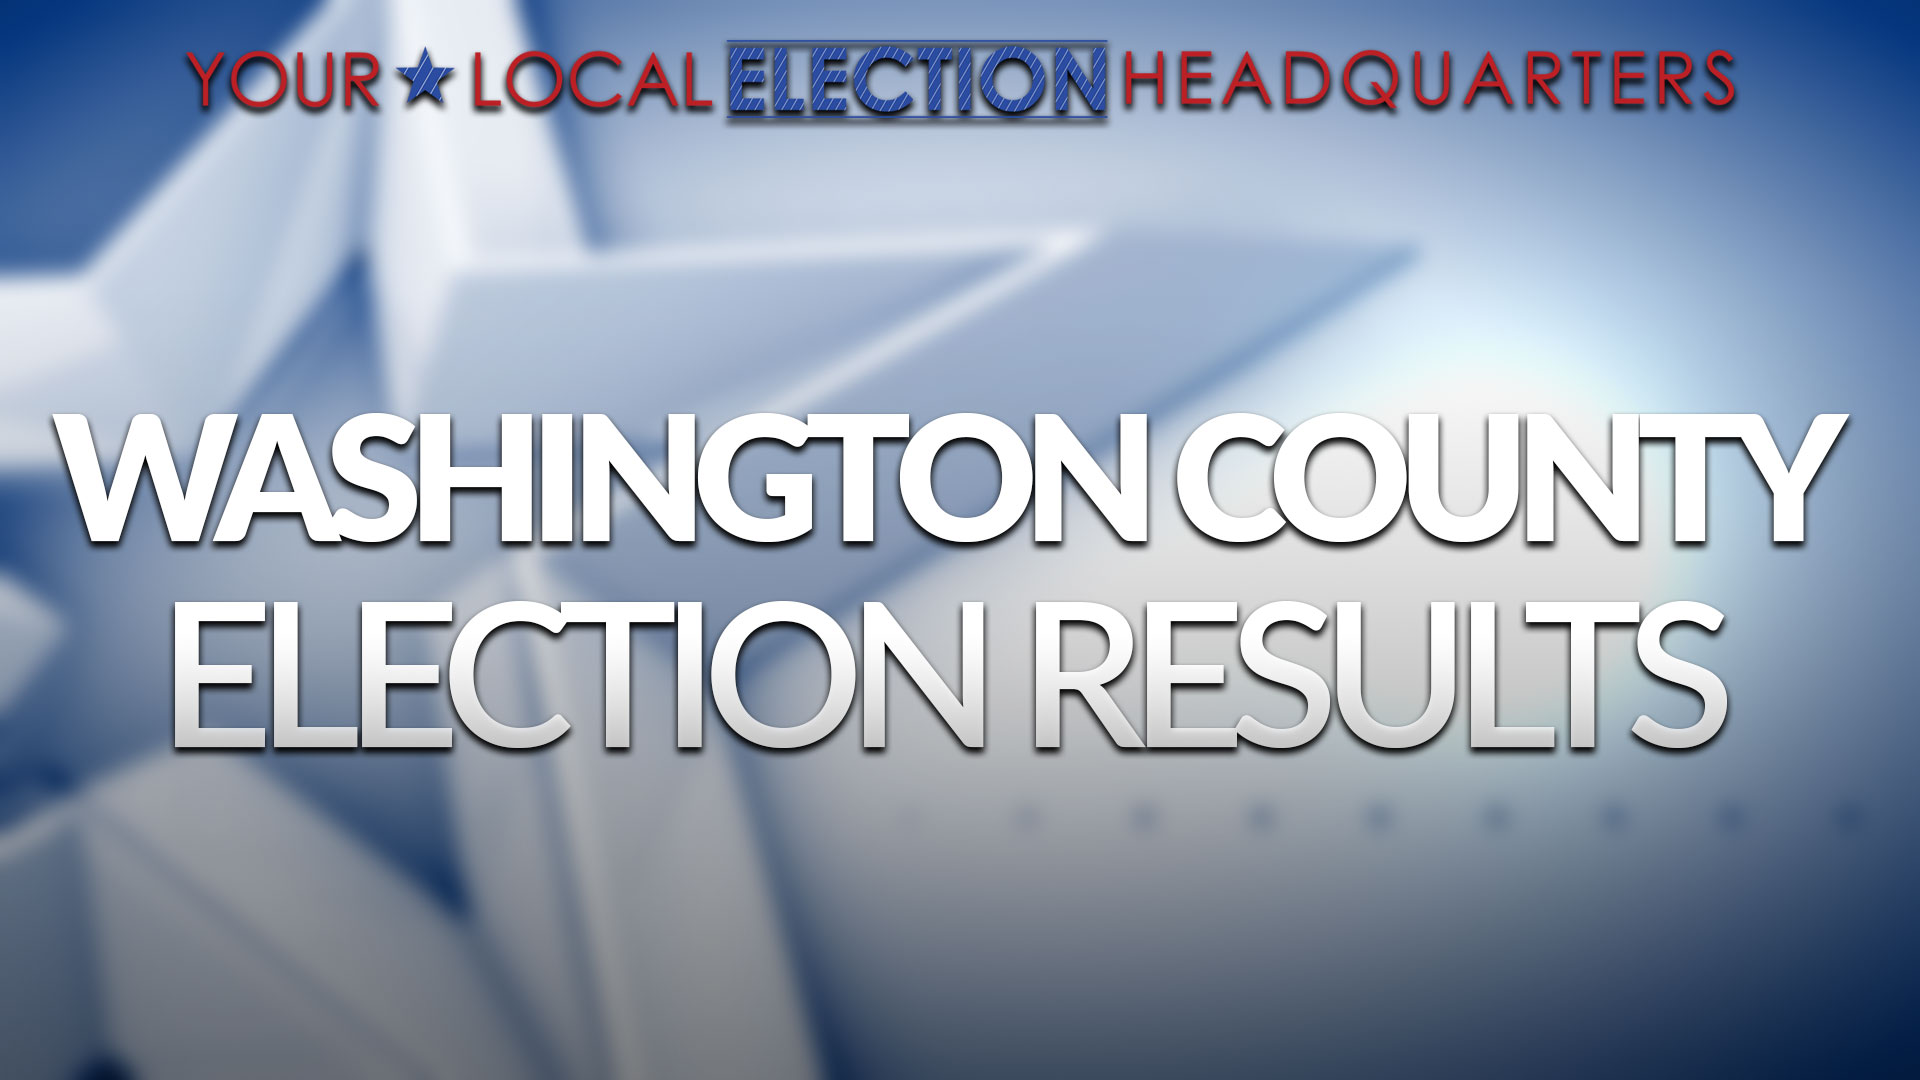 Washington County Election Results